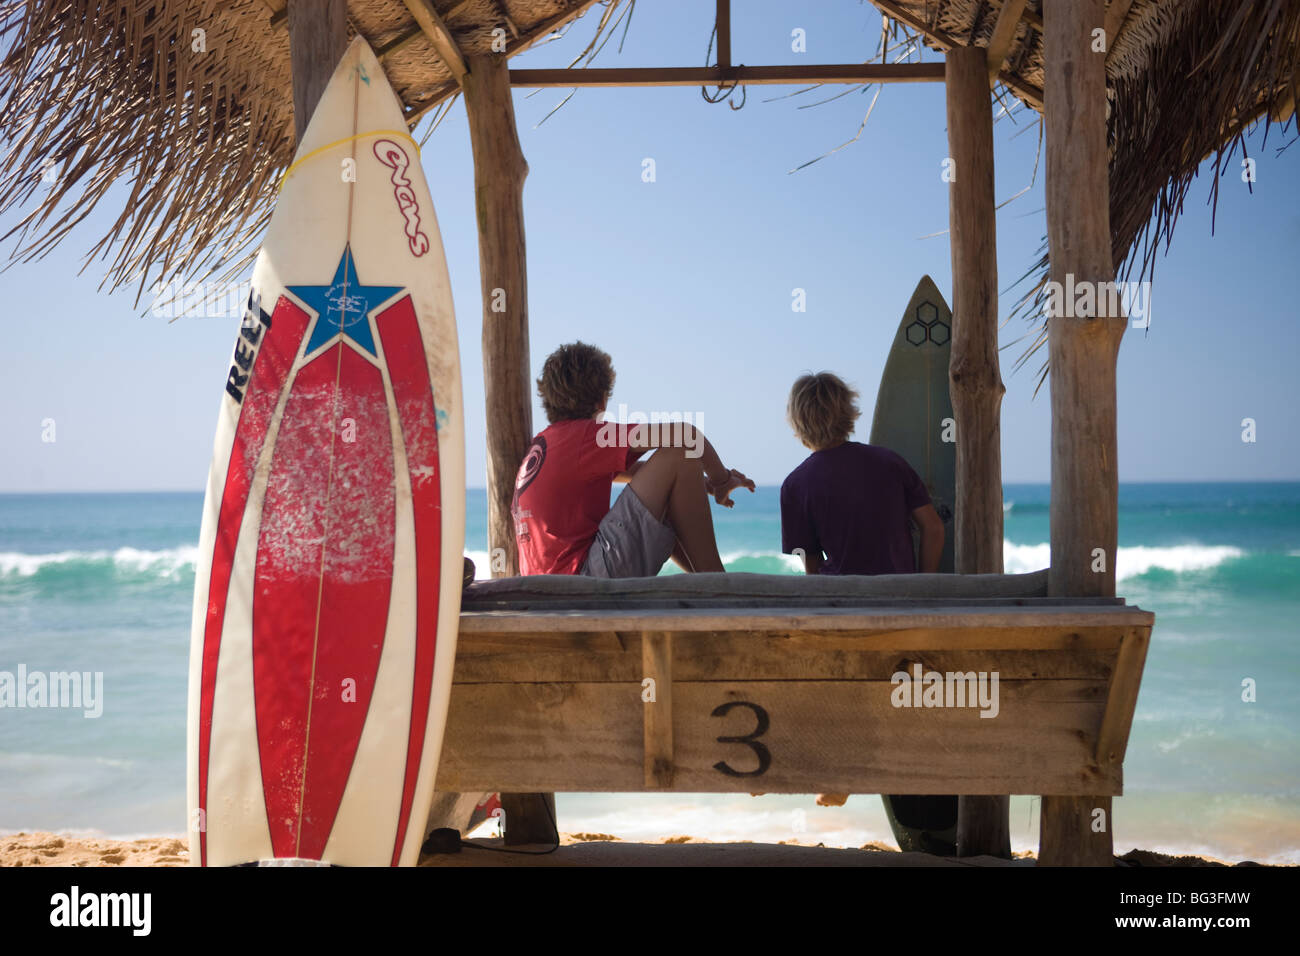 Surfers on Hikkaduwa Beach, Sri Lanka Stock Photo